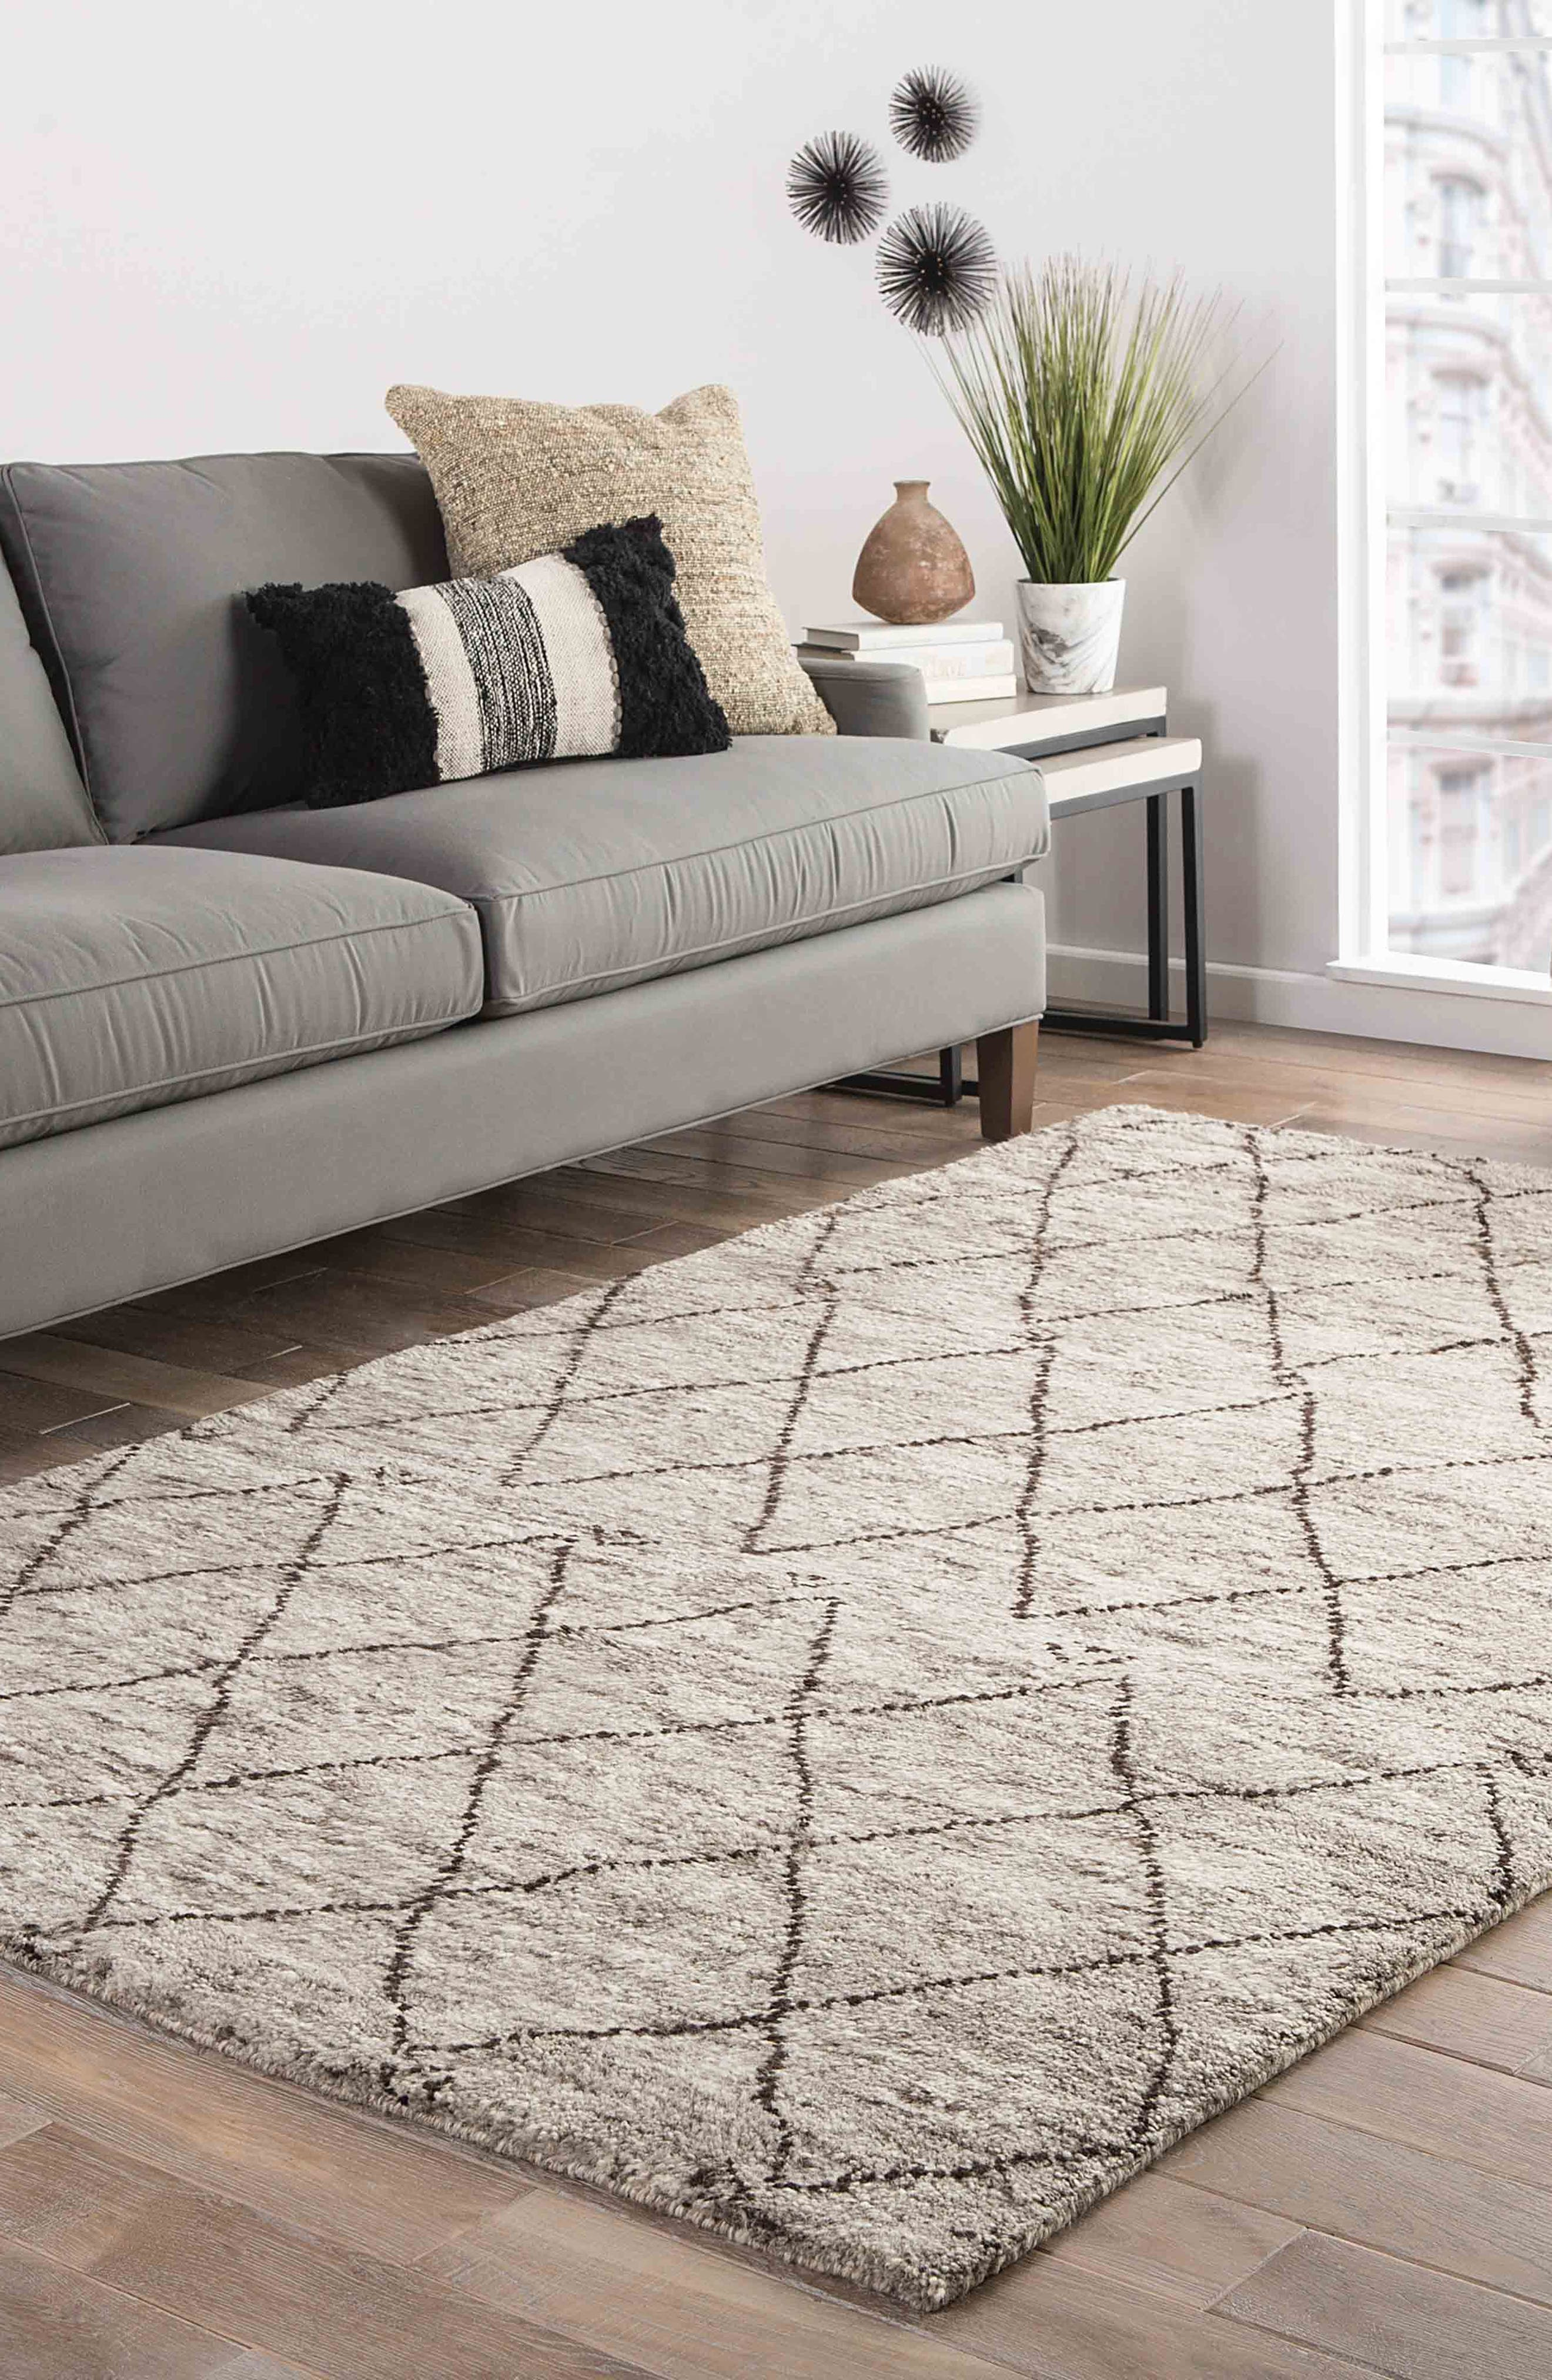 'Zola' Hand Knotted Wool Rug,                             Alternate thumbnail 6, color,                             NATURAL/ BROWN